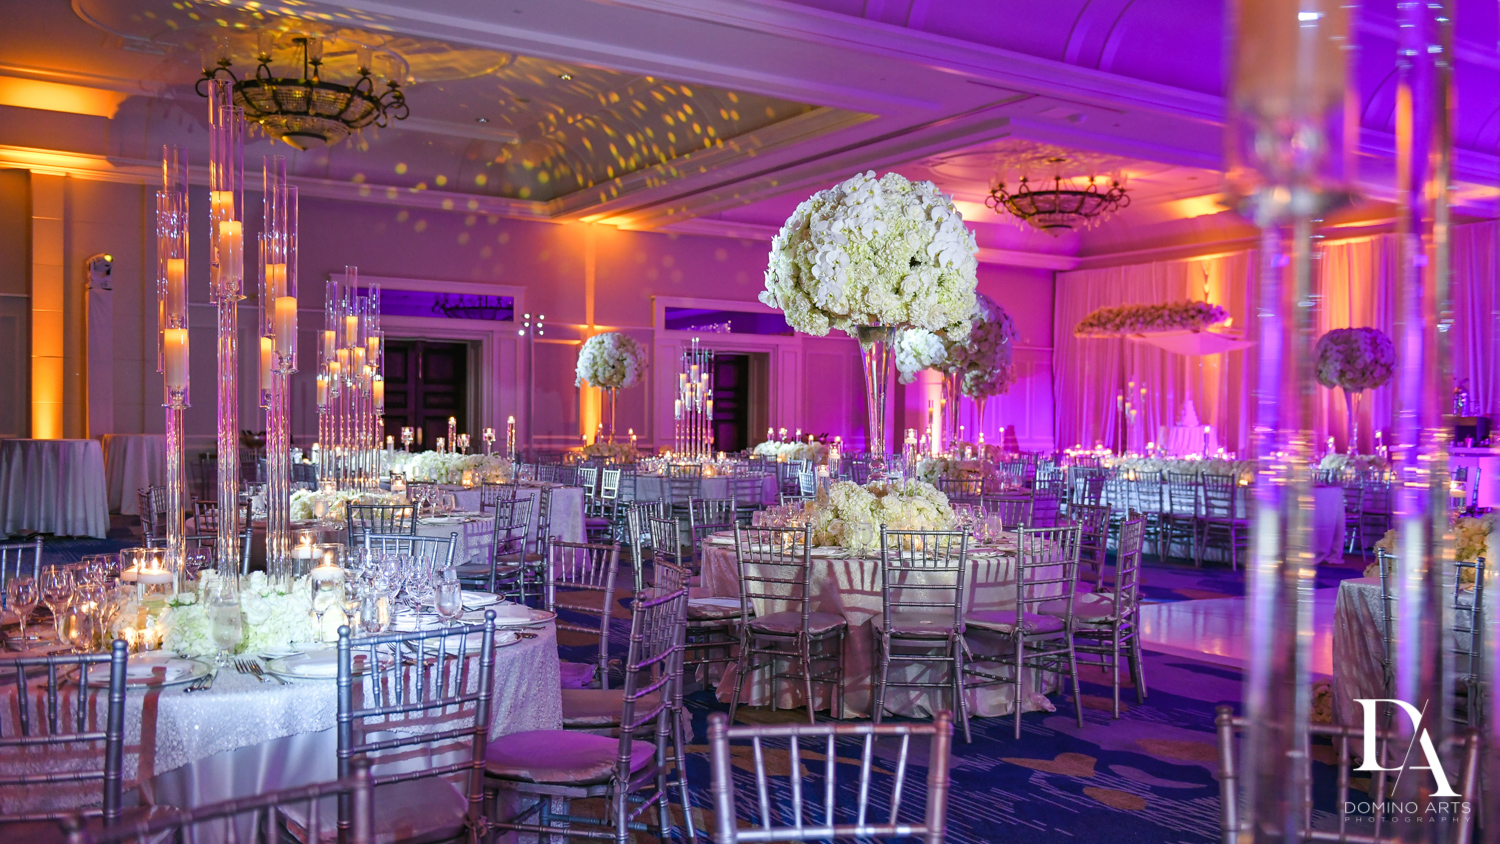 floral decor at A Ritz Carlton Wedding in Key Biscayne by Domino Arts Photography